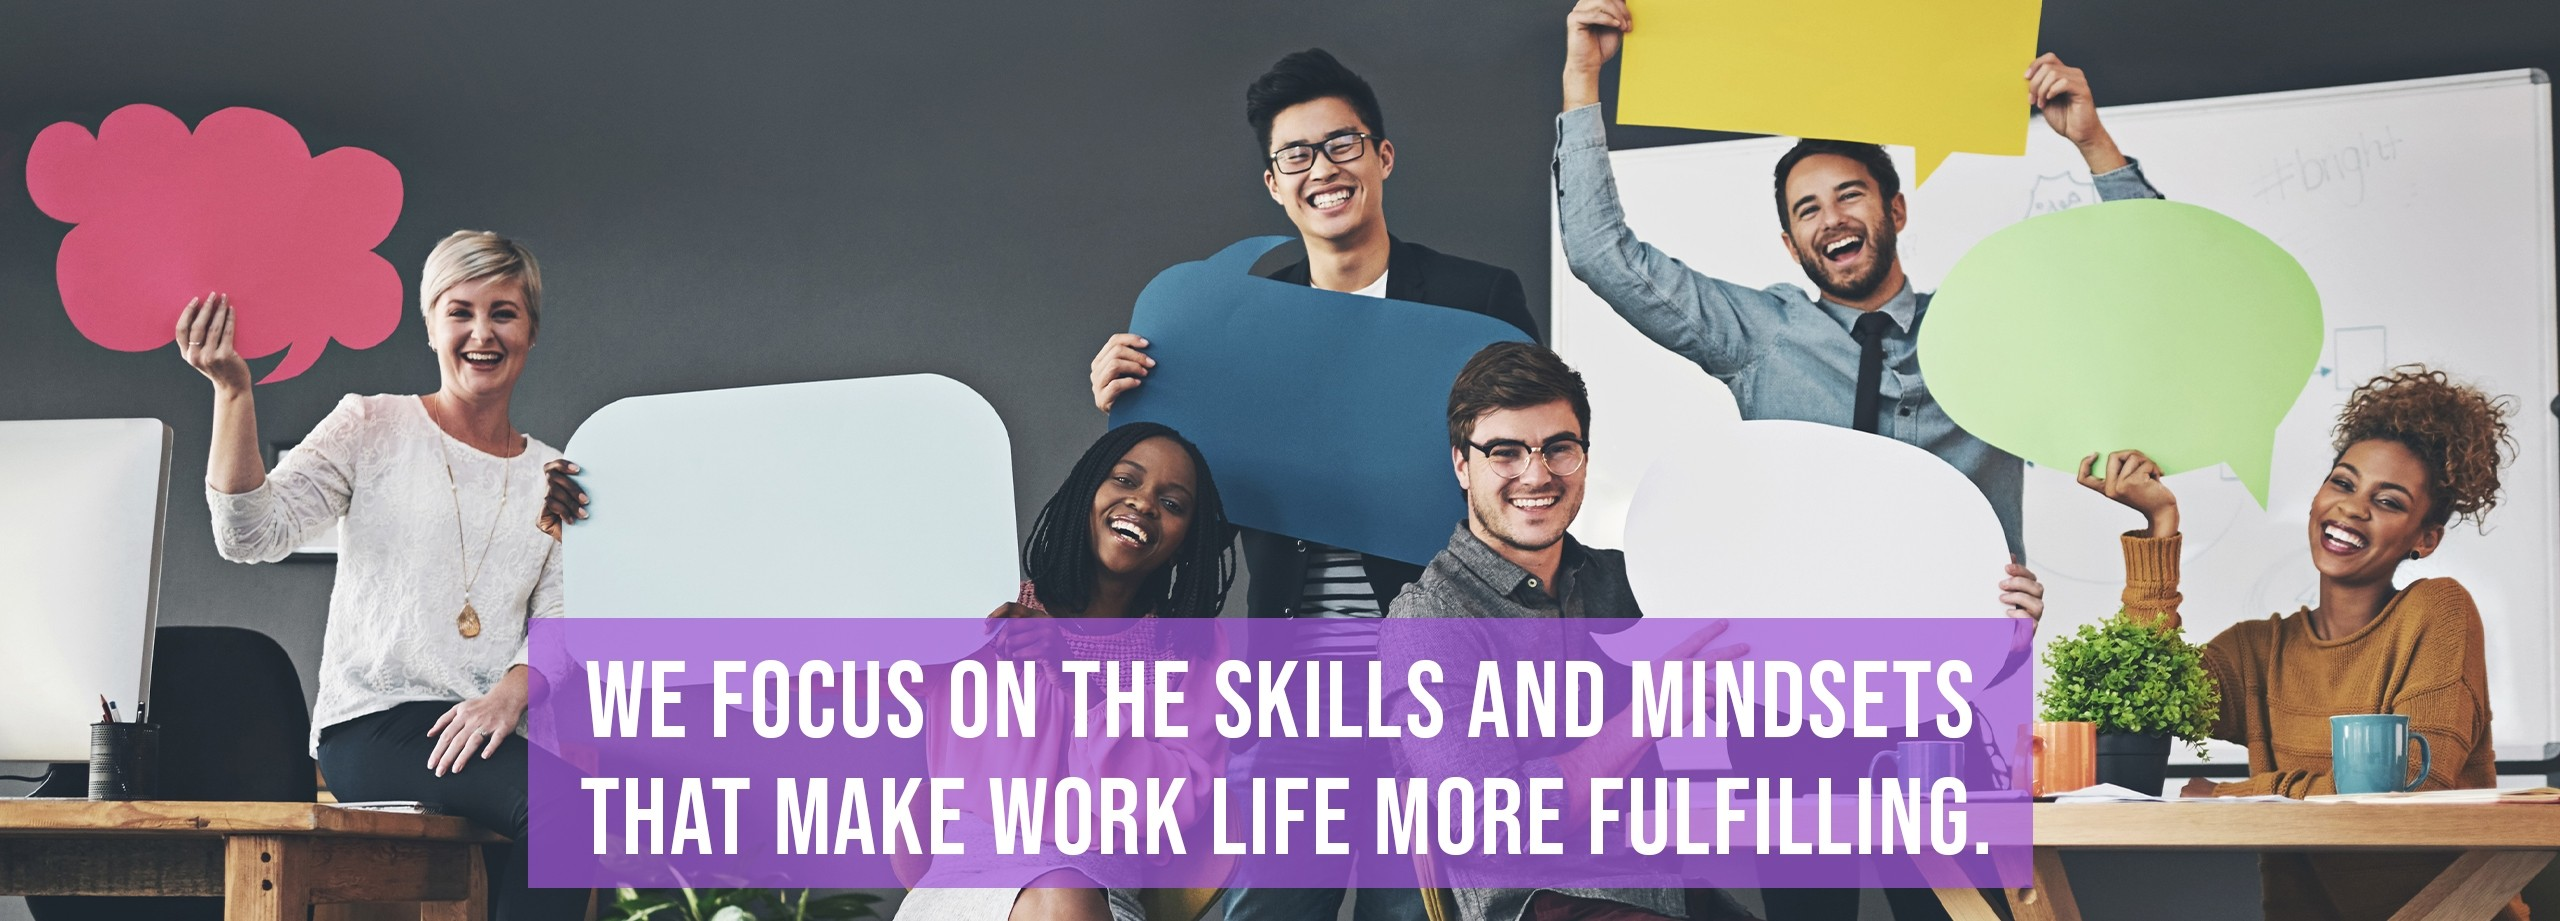 """Photo of a group of professional adults holding speech bubbles with the tagline """"We Focus On The Skills And Mindsets That Make Life More Fulfilling."""""""